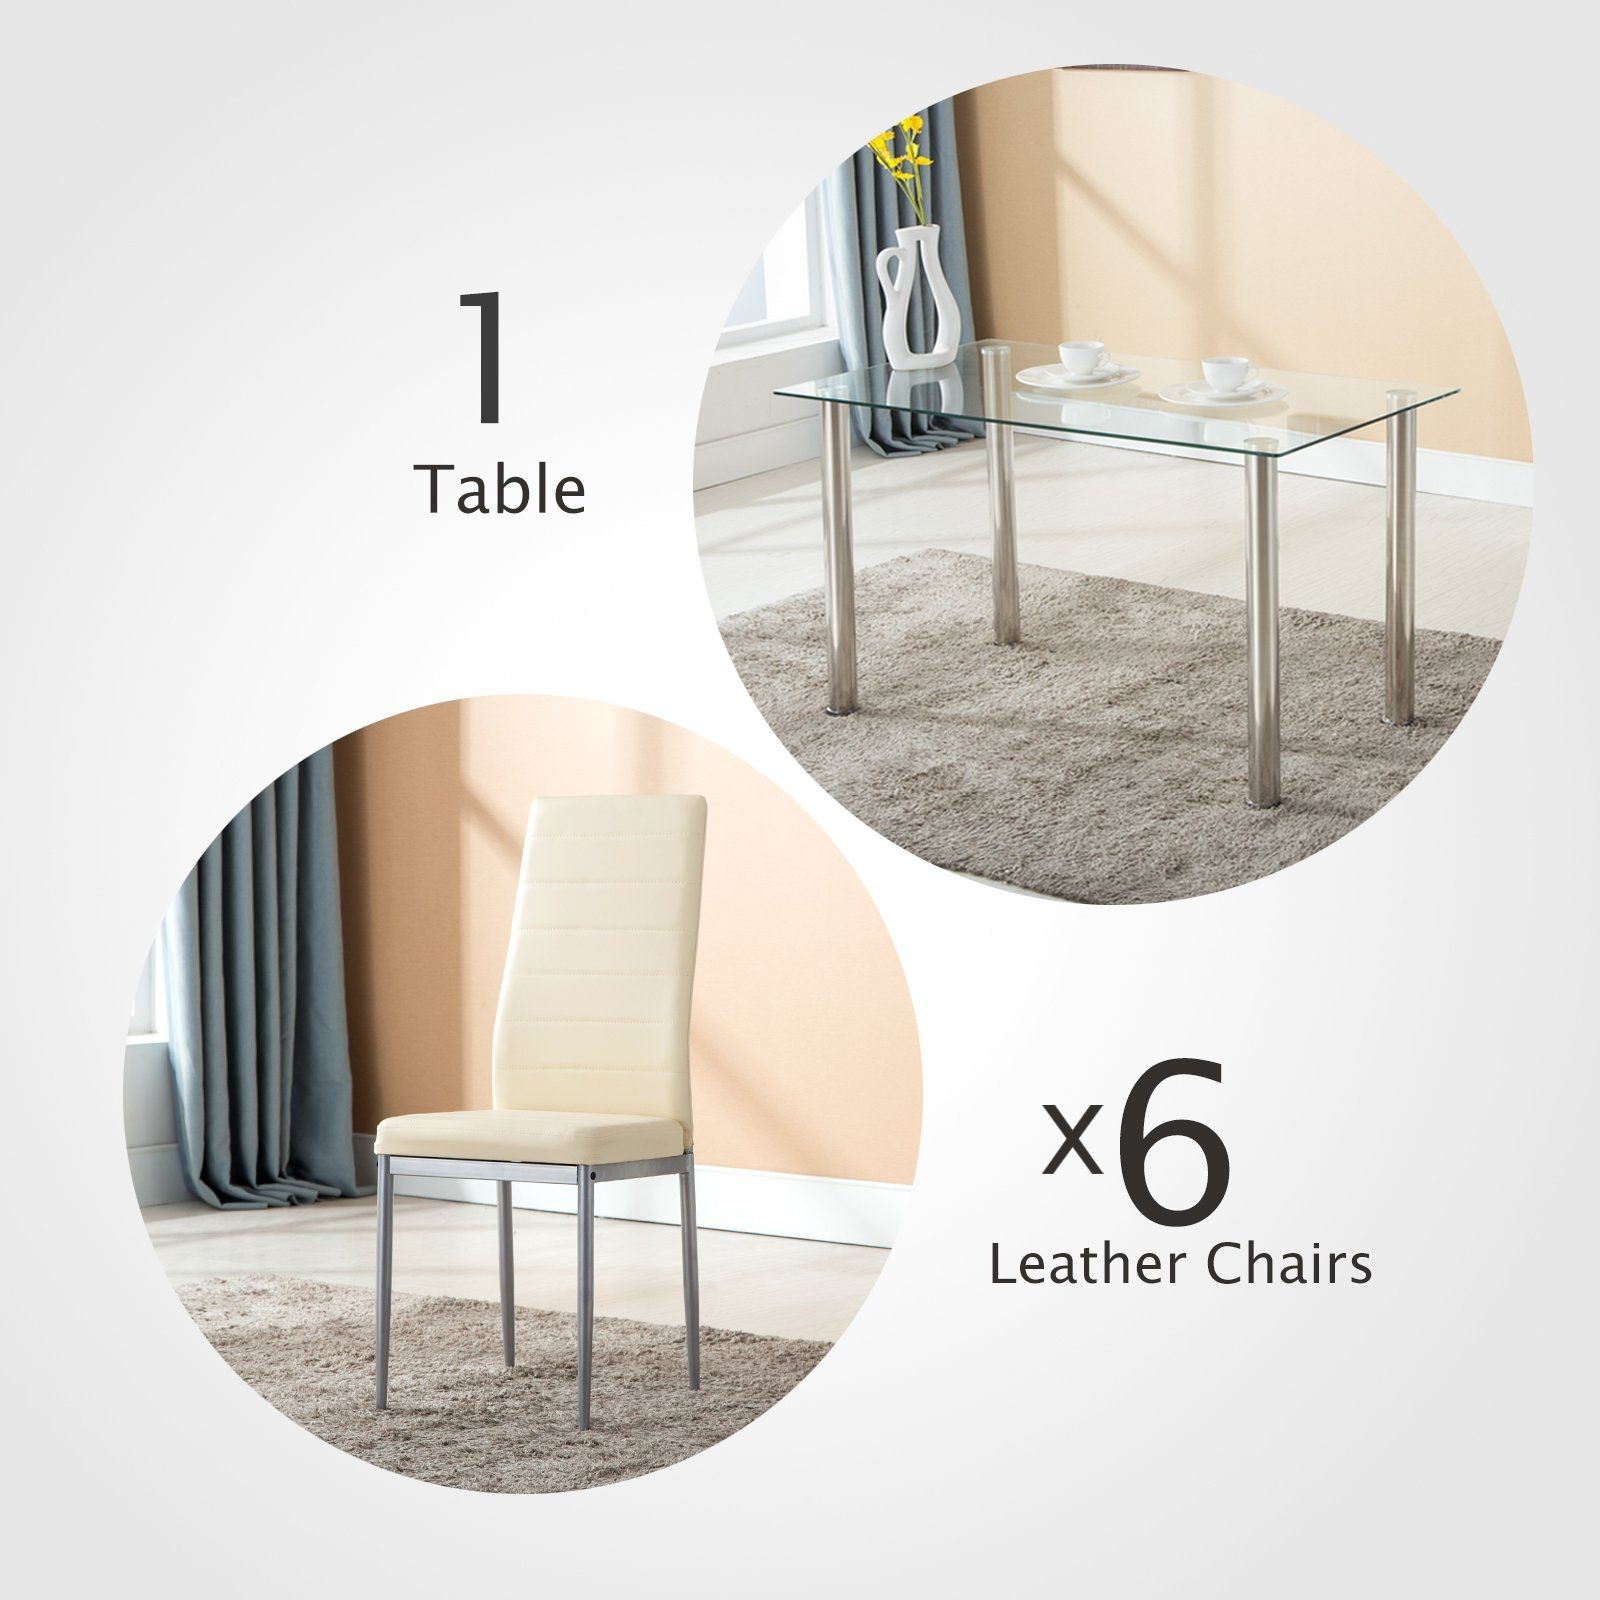 3a777cb888f76 Mecor 7 Piece Kitchen Dining Set Glass Top Table with 6 Leather Chairs  Breakfast Furniture Beige